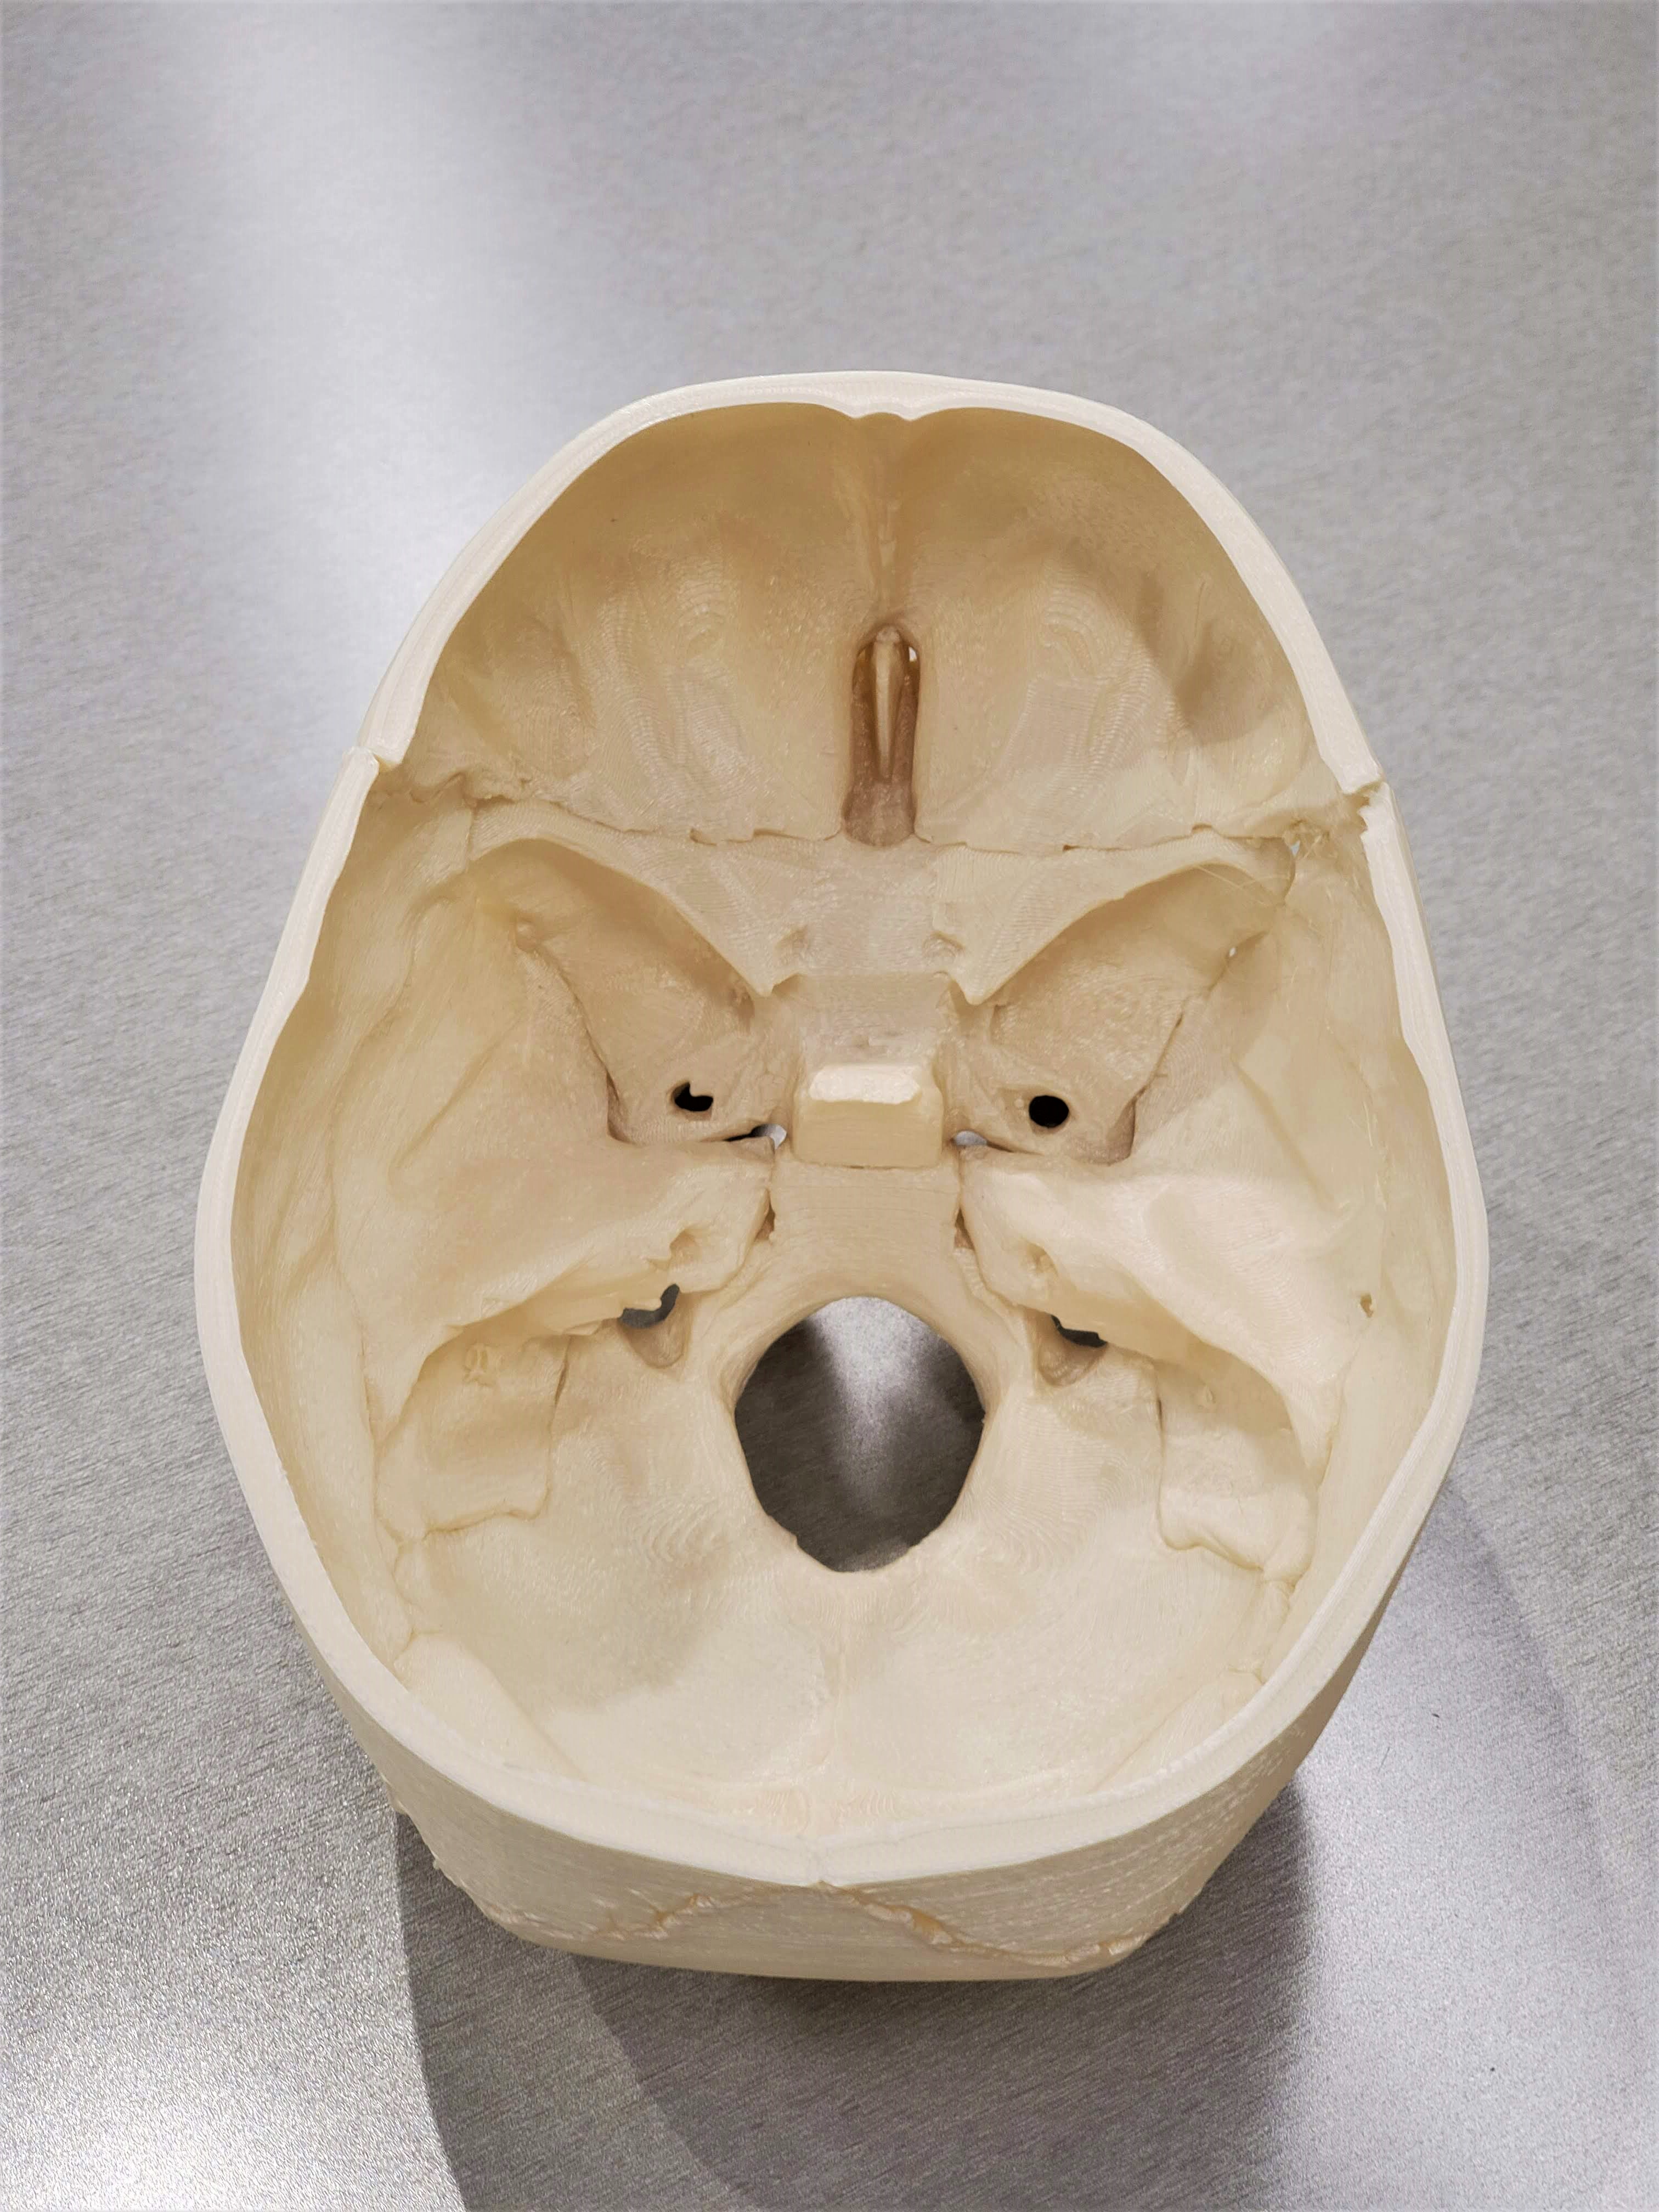 Inside of 3D printed skull without top